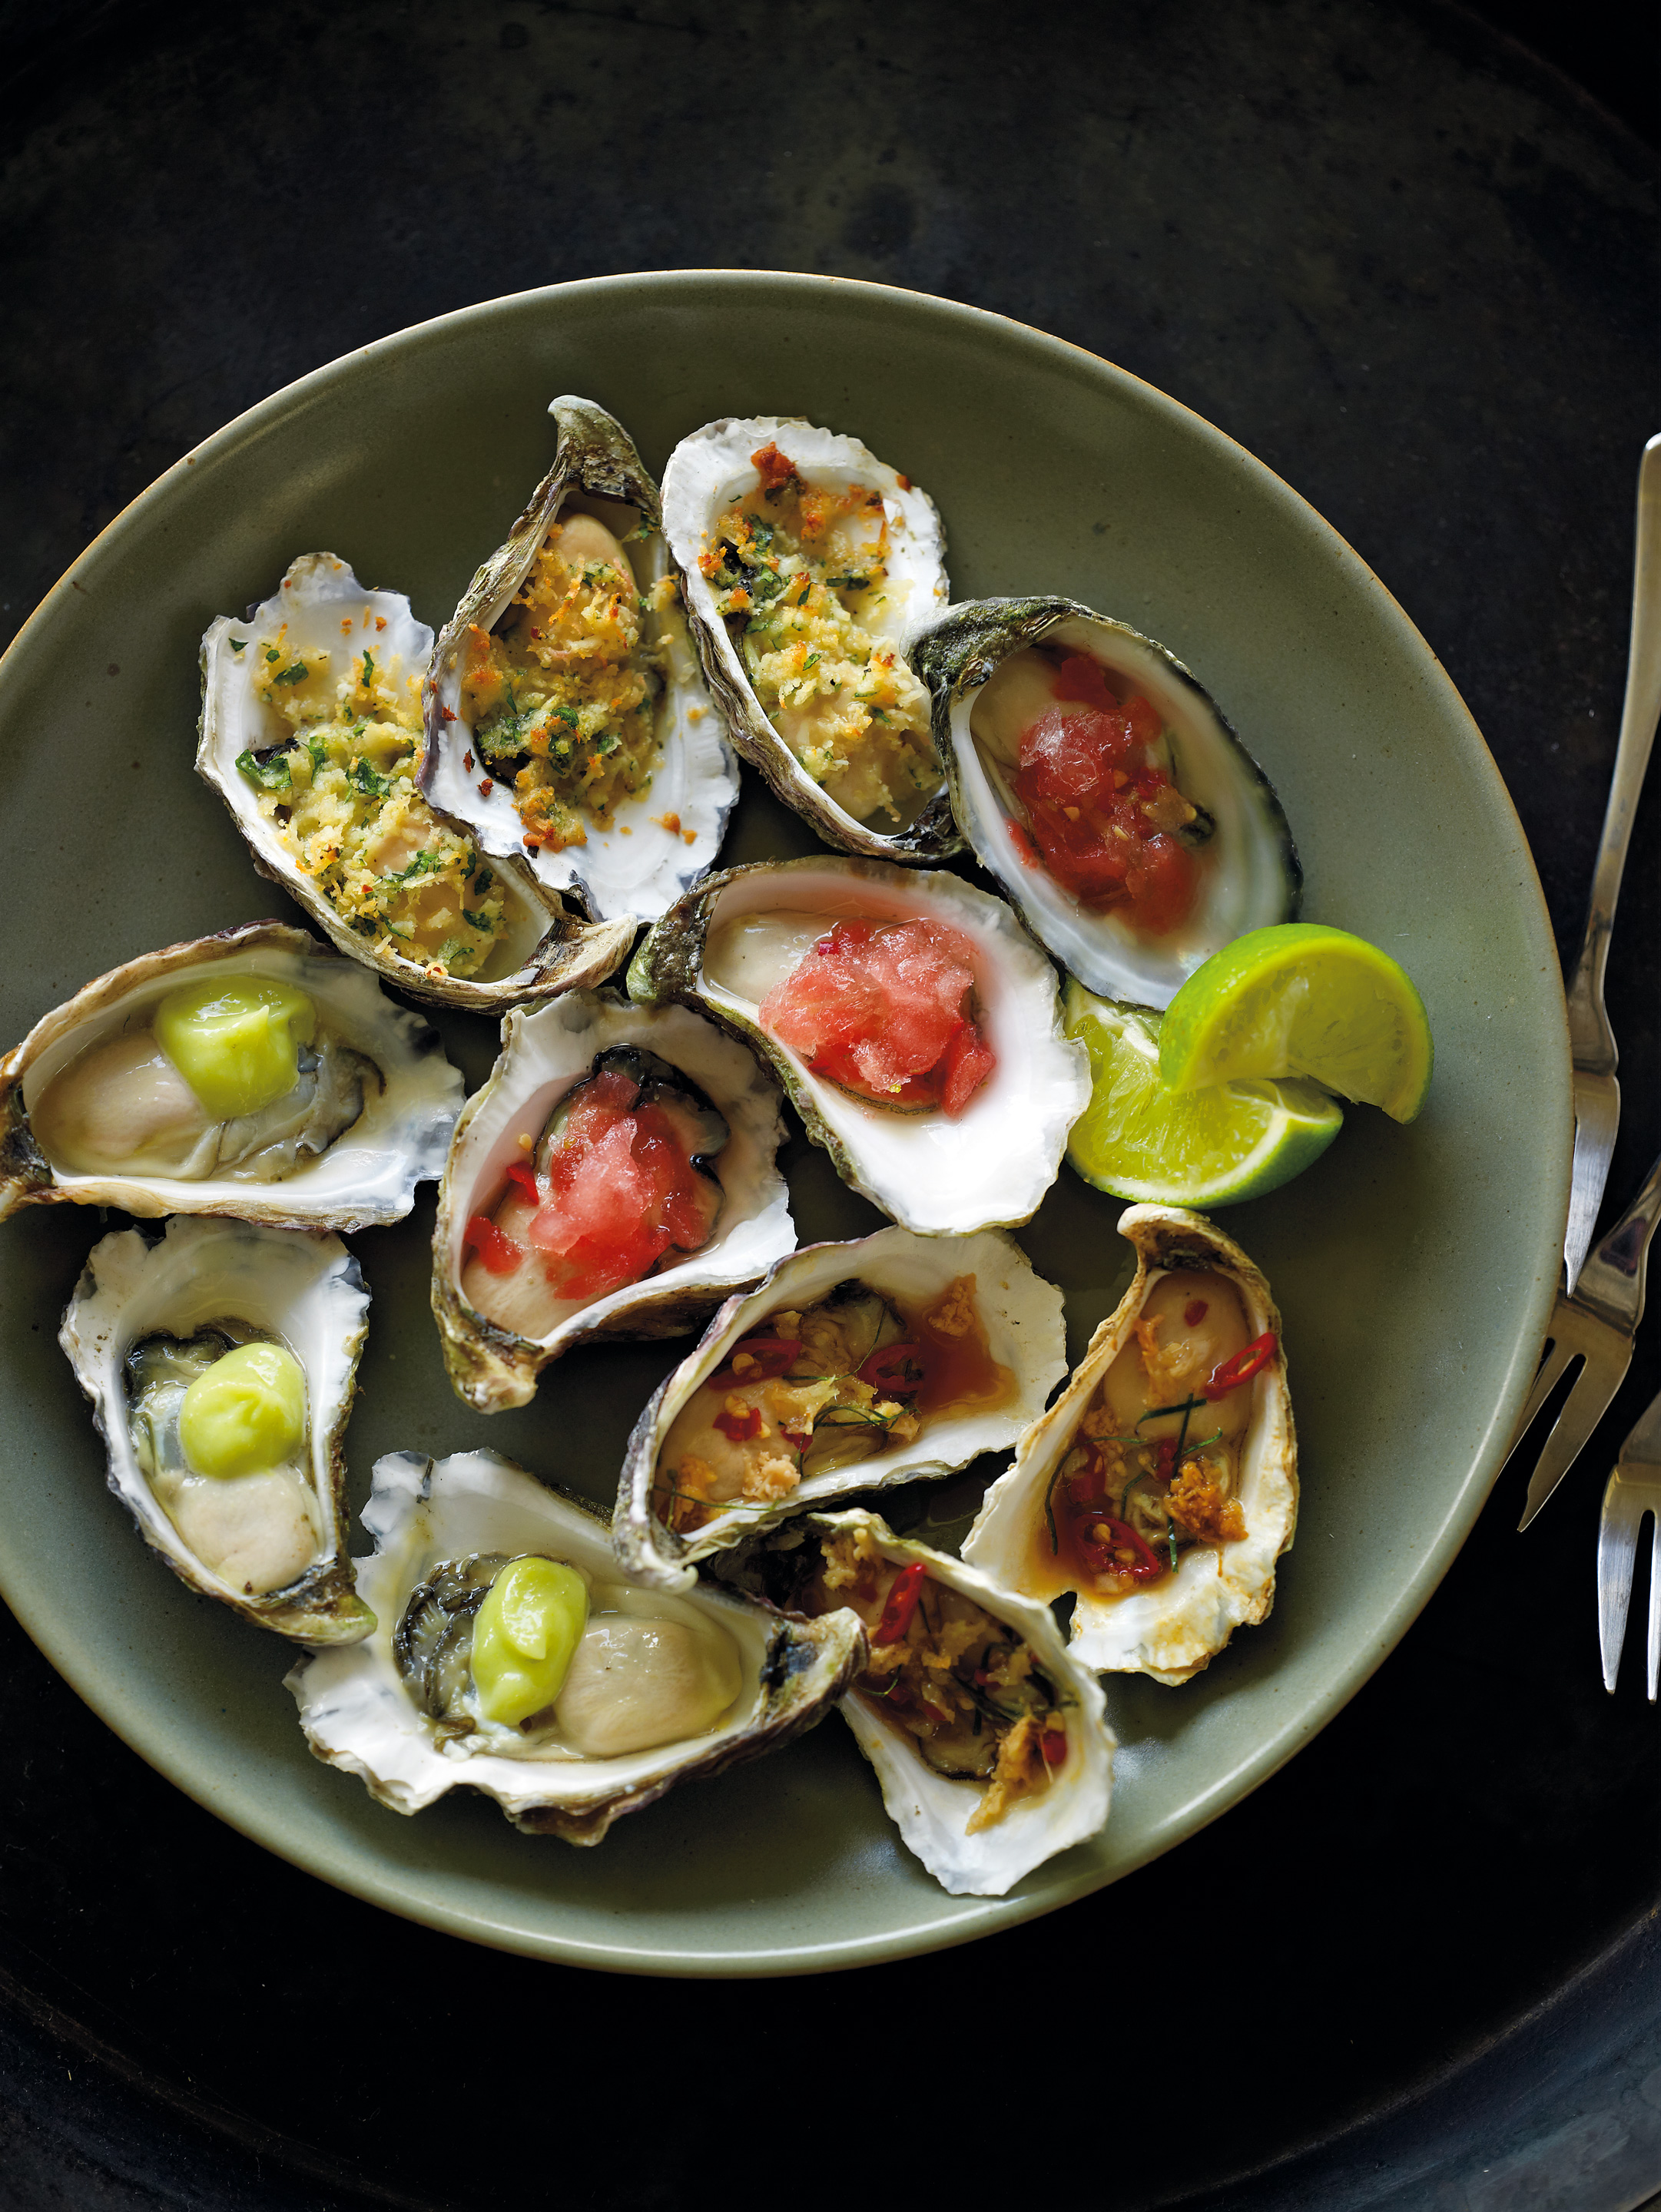 Oysters with chardonnay and spicy watermelon